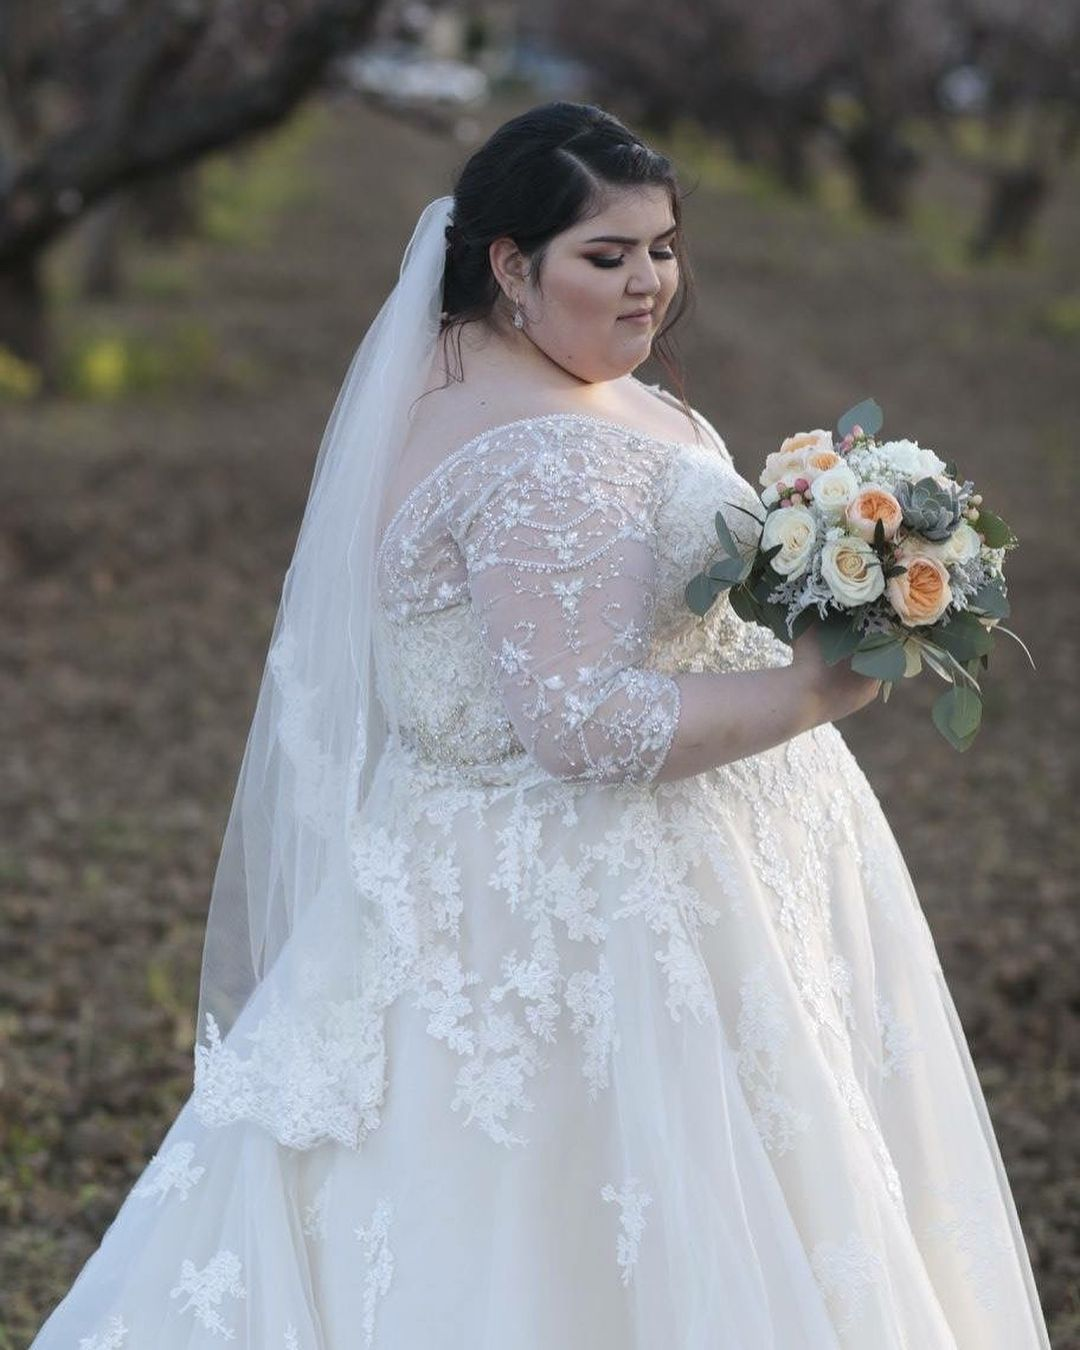 Full Figure Wedding Gowns: This Long Sleeve Wedding Gown Is A Great Cut For A Larger